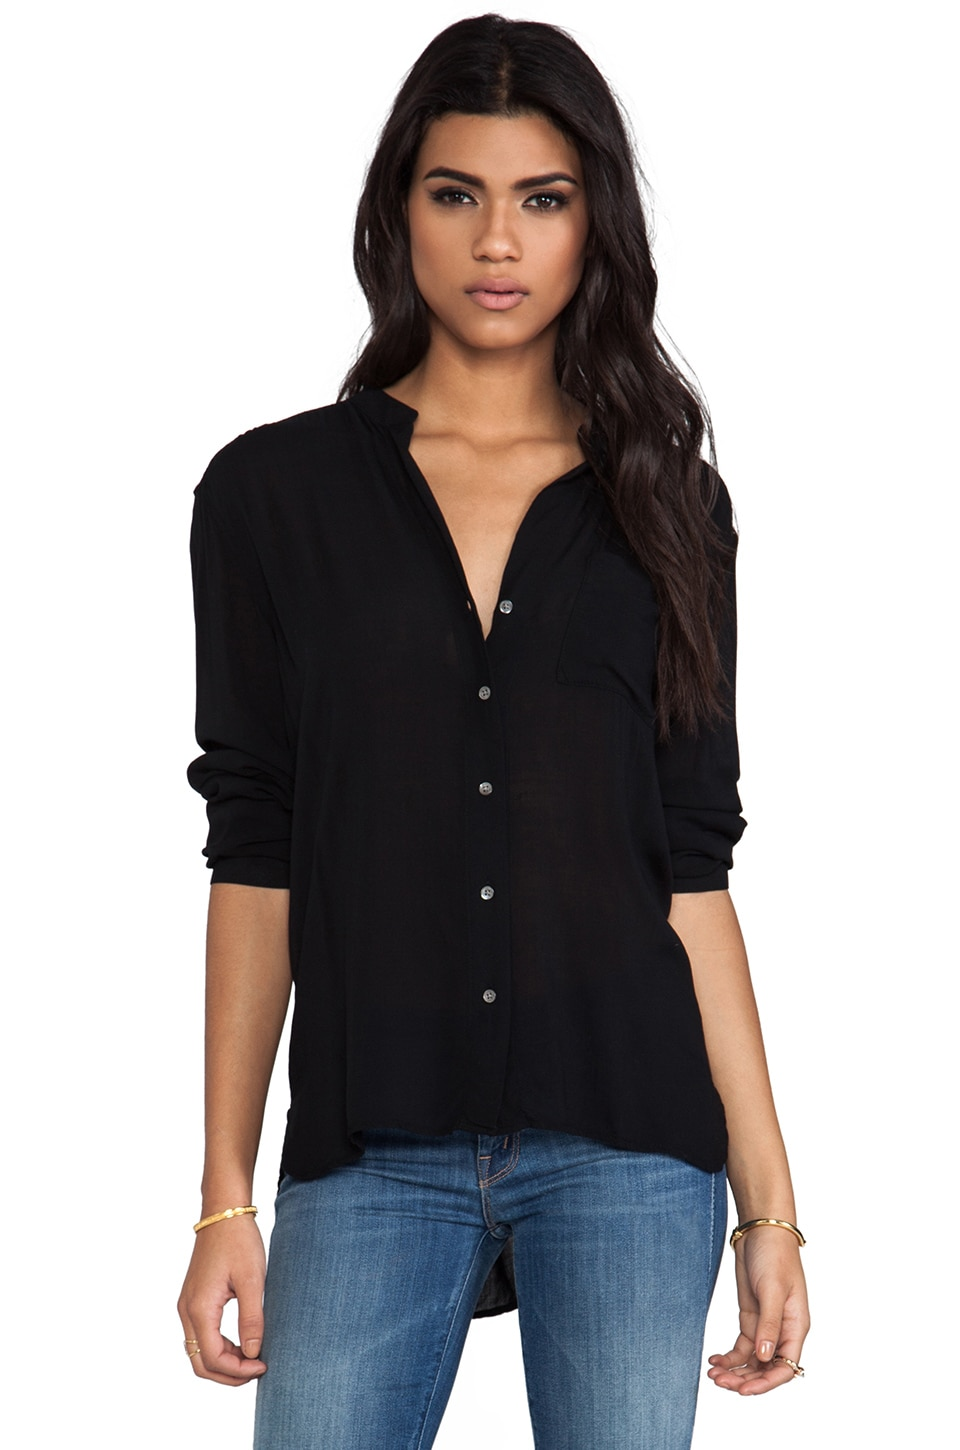 James Perse Collarless Pocket Shirt in Black